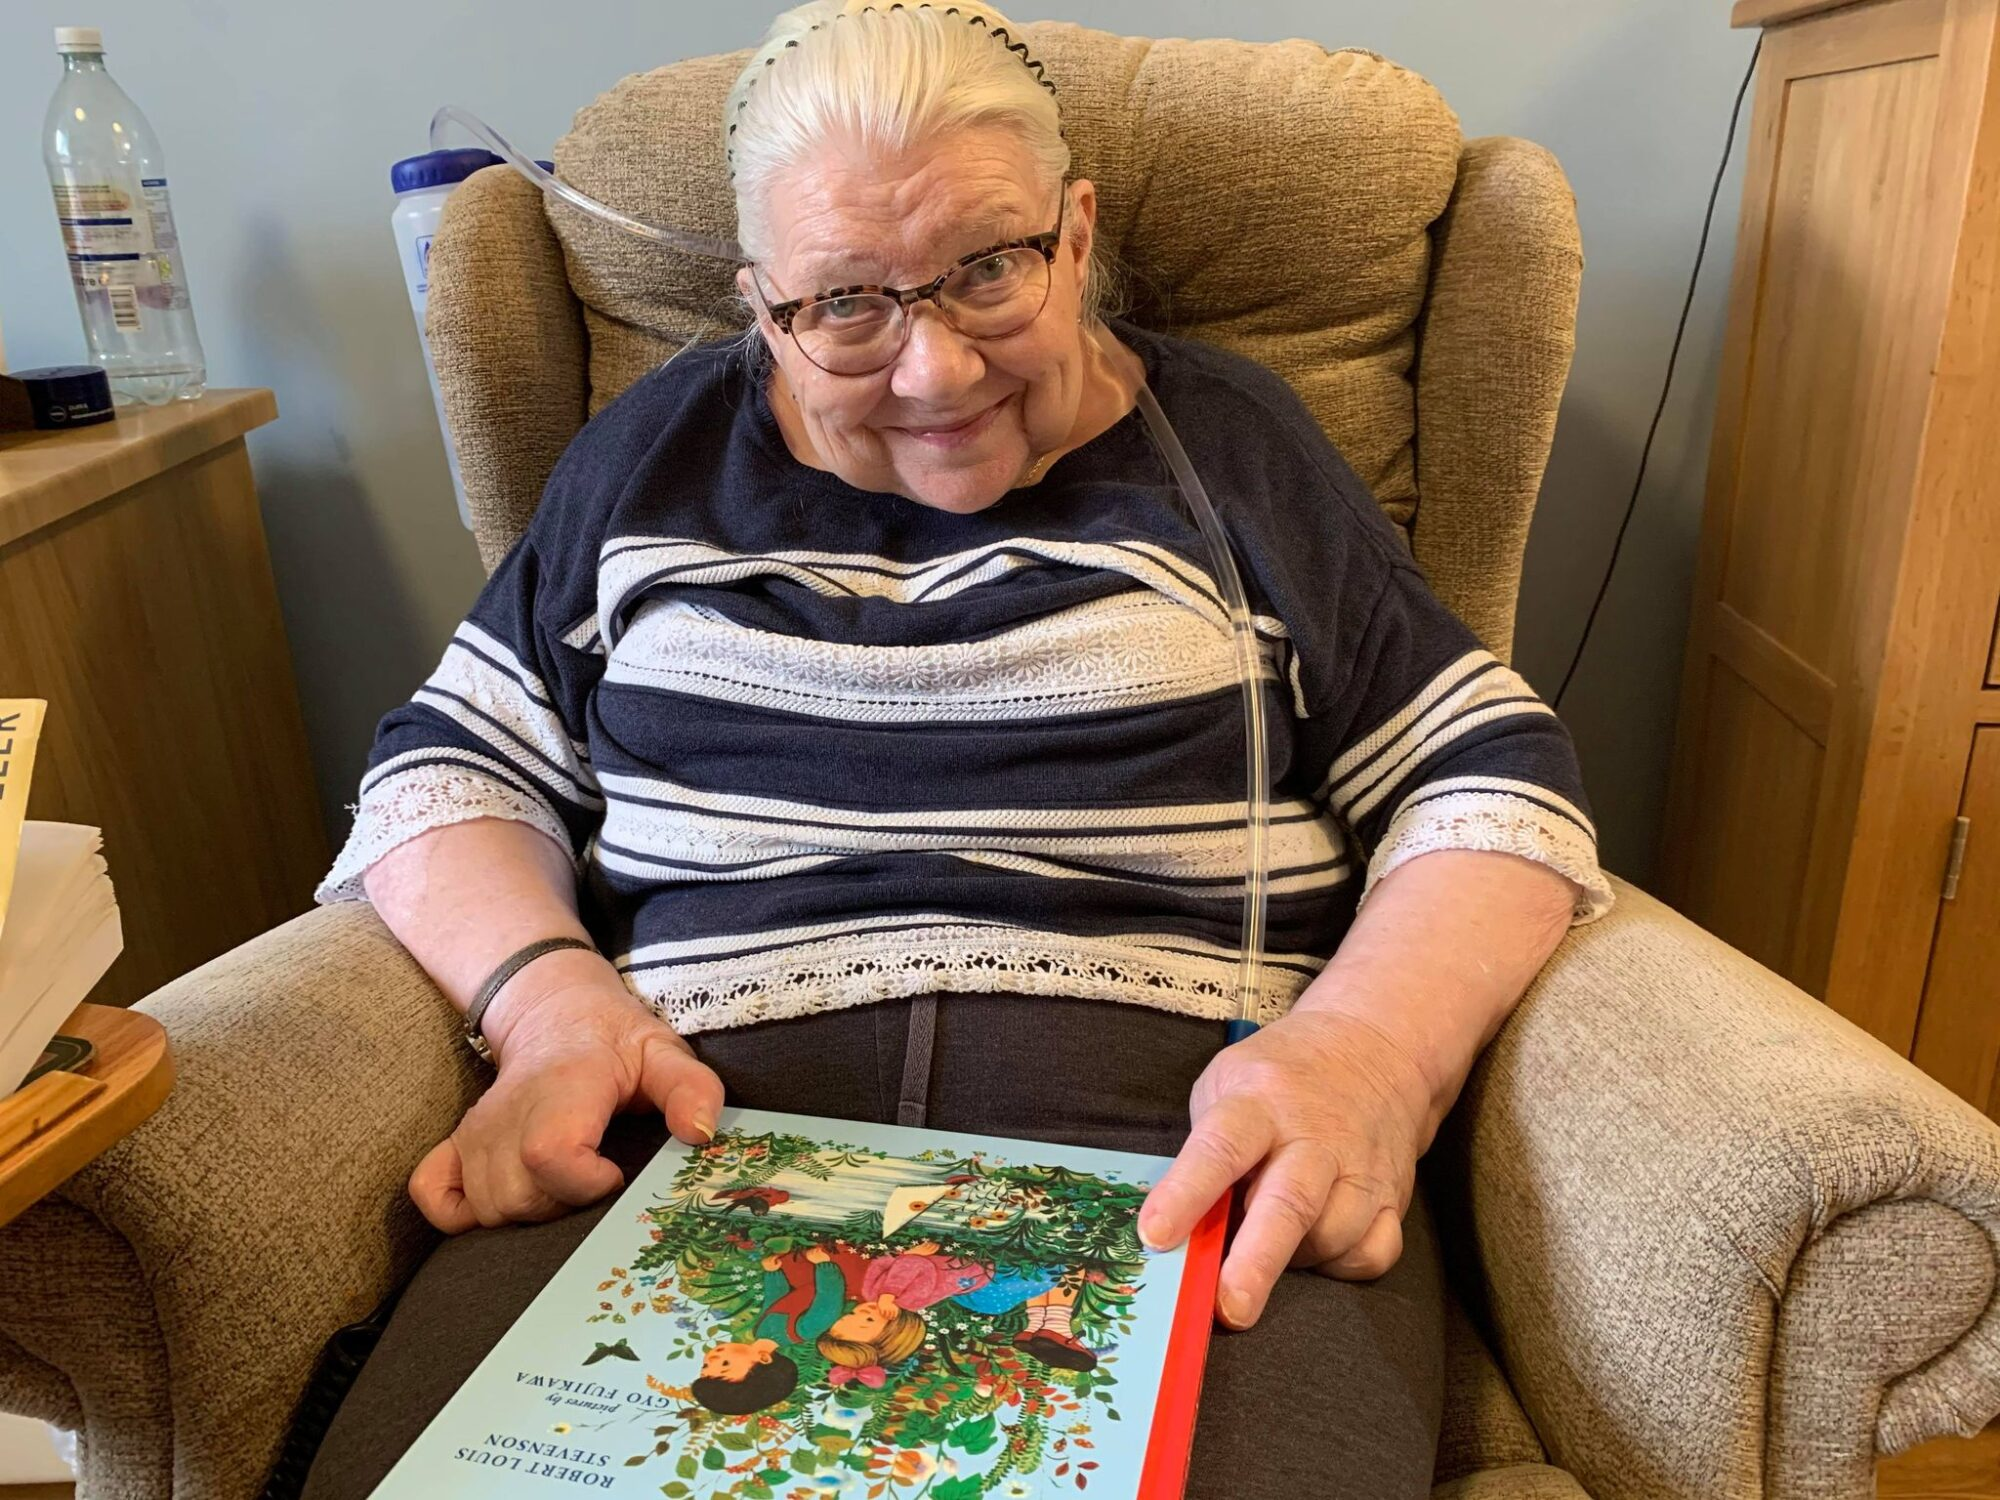 An Arbroath care home resident shares her favourite stories for International Children's Book Day